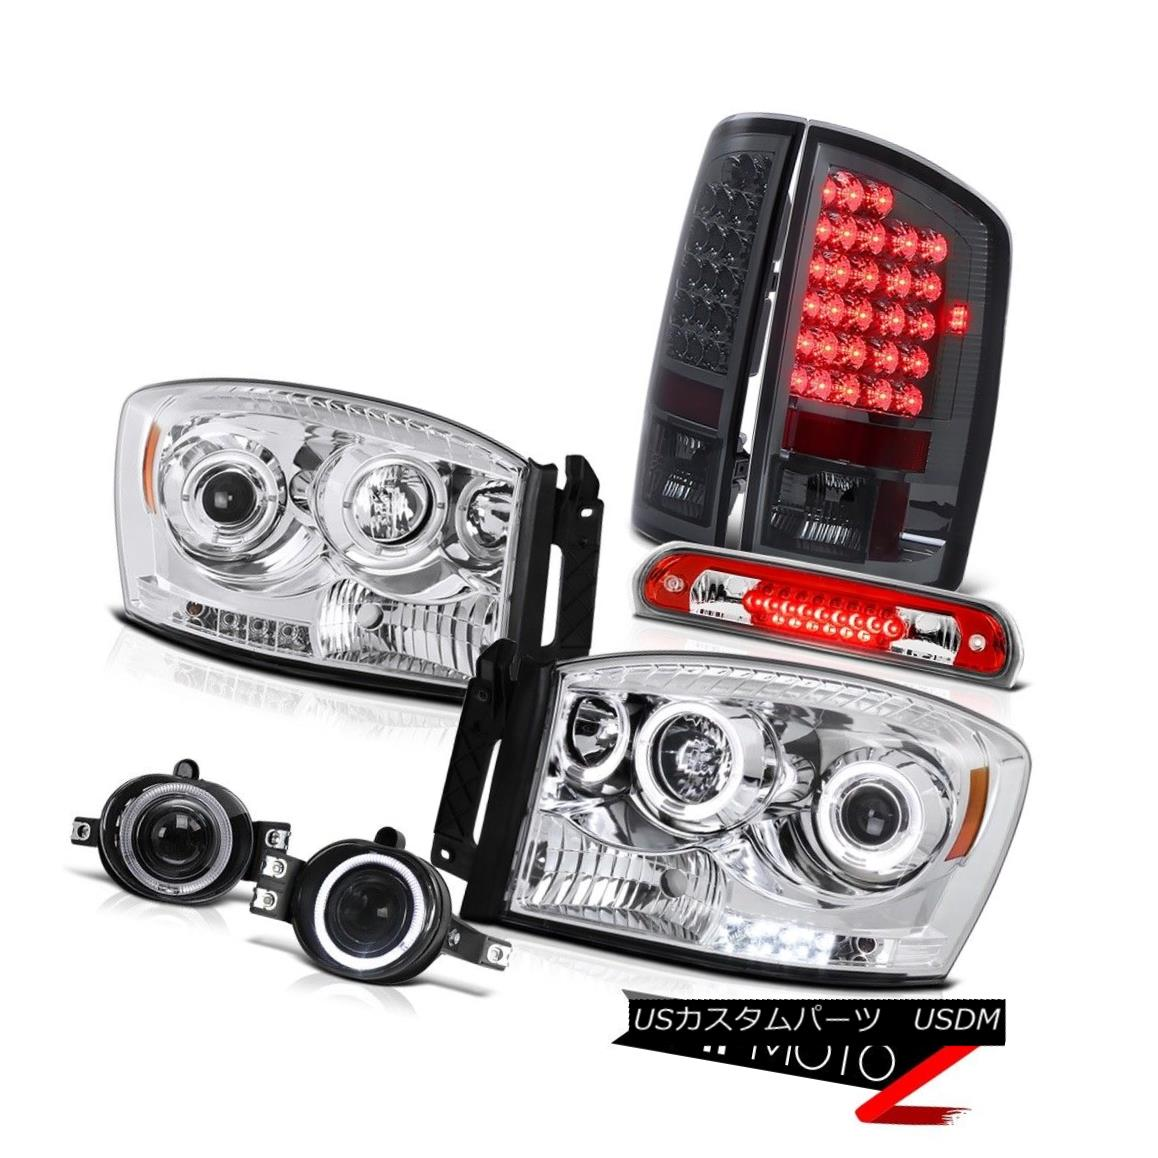 テールライト Clear Halo LED Headlights Smoked Taillamps Fog Roof 3rd 2006 Dodge Ram PowerTech クリアHalo LEDヘッドライトスモークタイルランプFog Roof 3rd 2006 Dodge Ram PowerTech